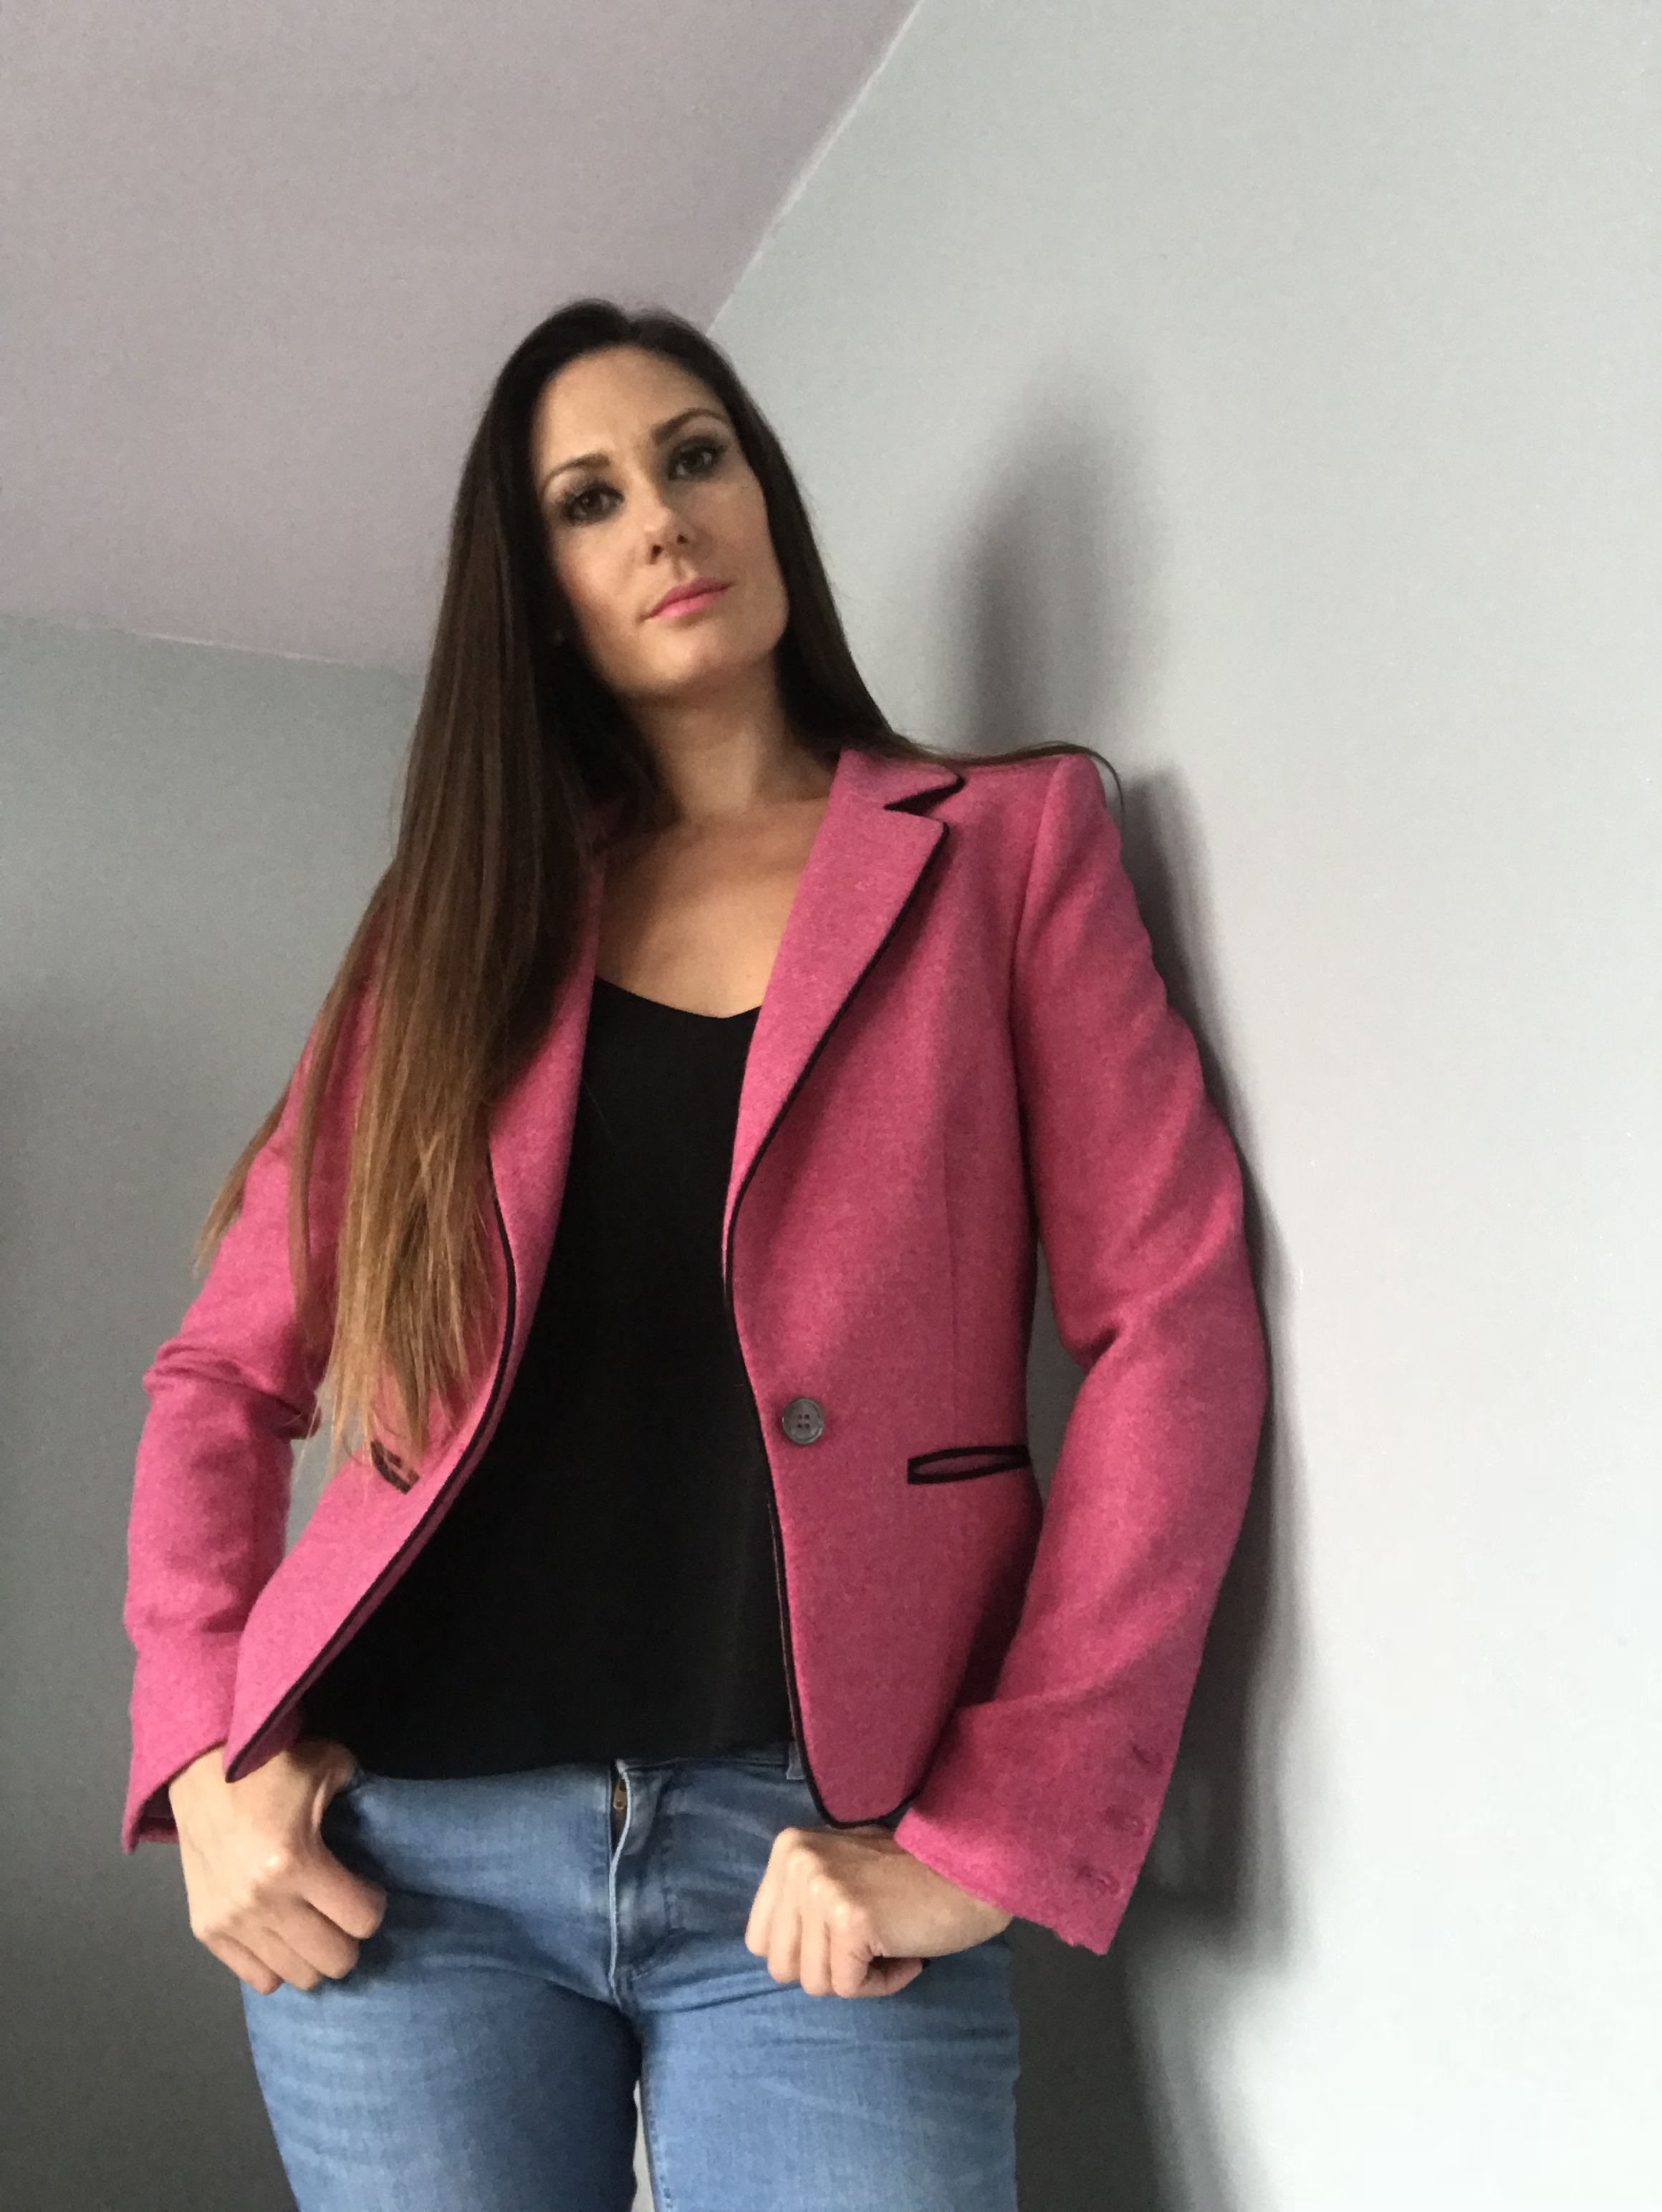 Katy in student mode - She teams her Moreton blazer with jeans and a casual top for a 'smart-casual' look